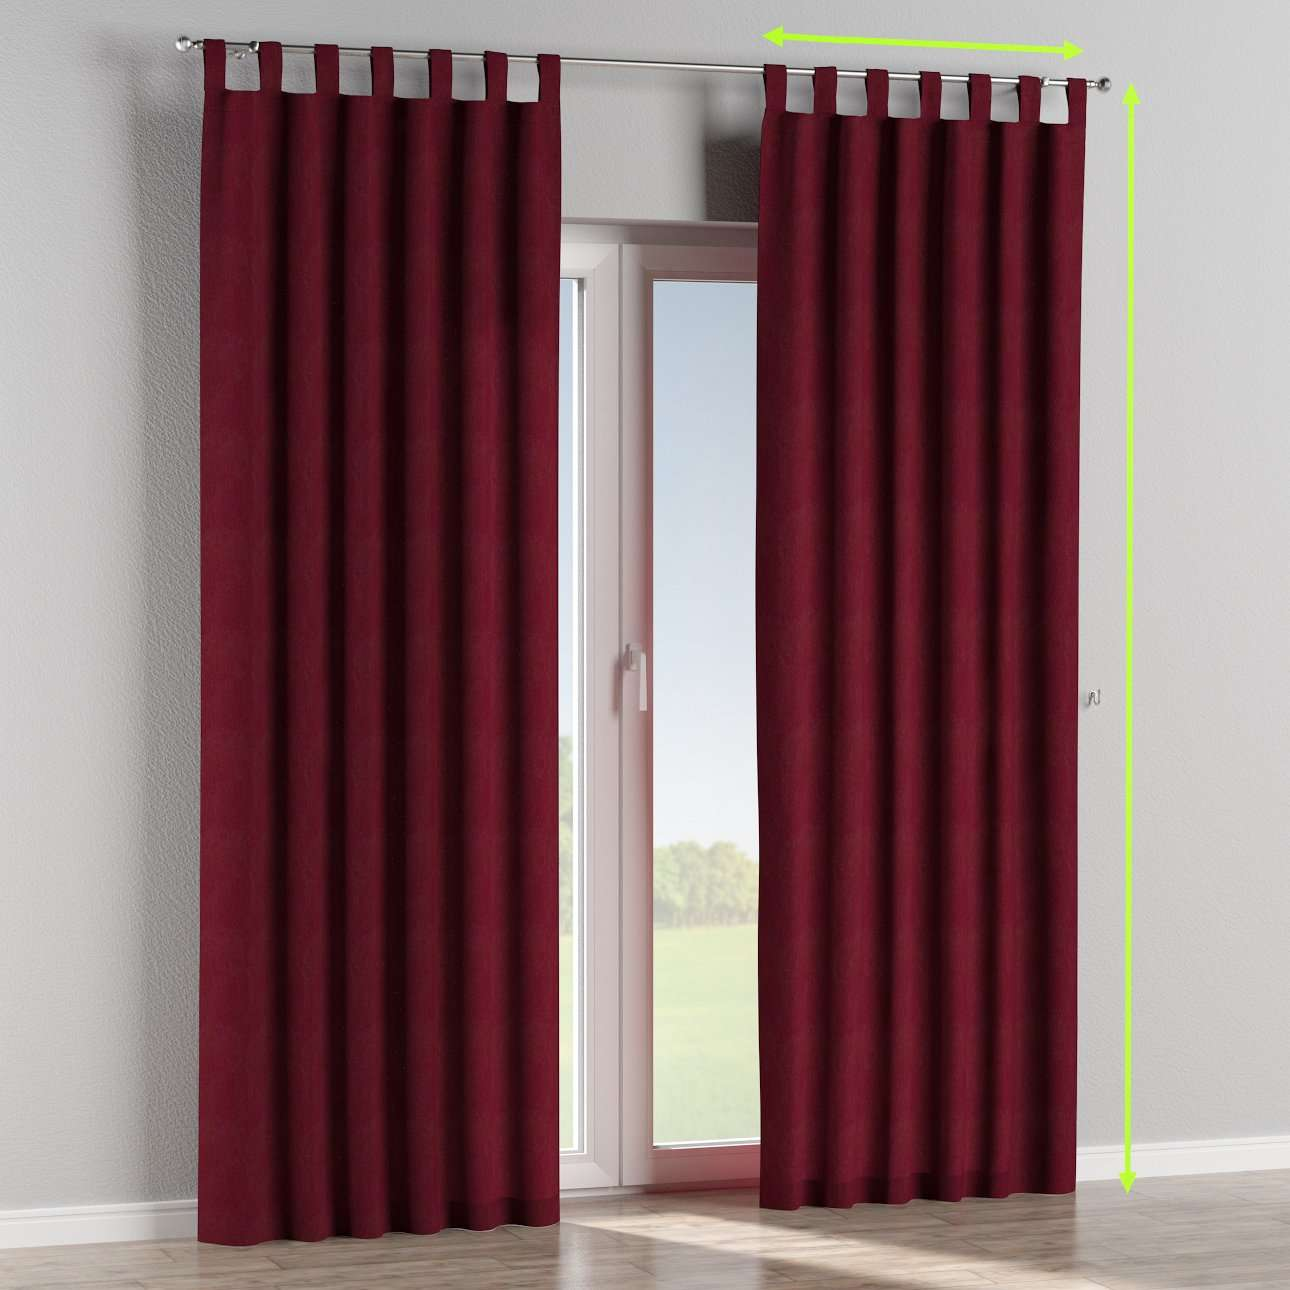 Tab top lined curtains in collection Chenille, fabric: 702-19